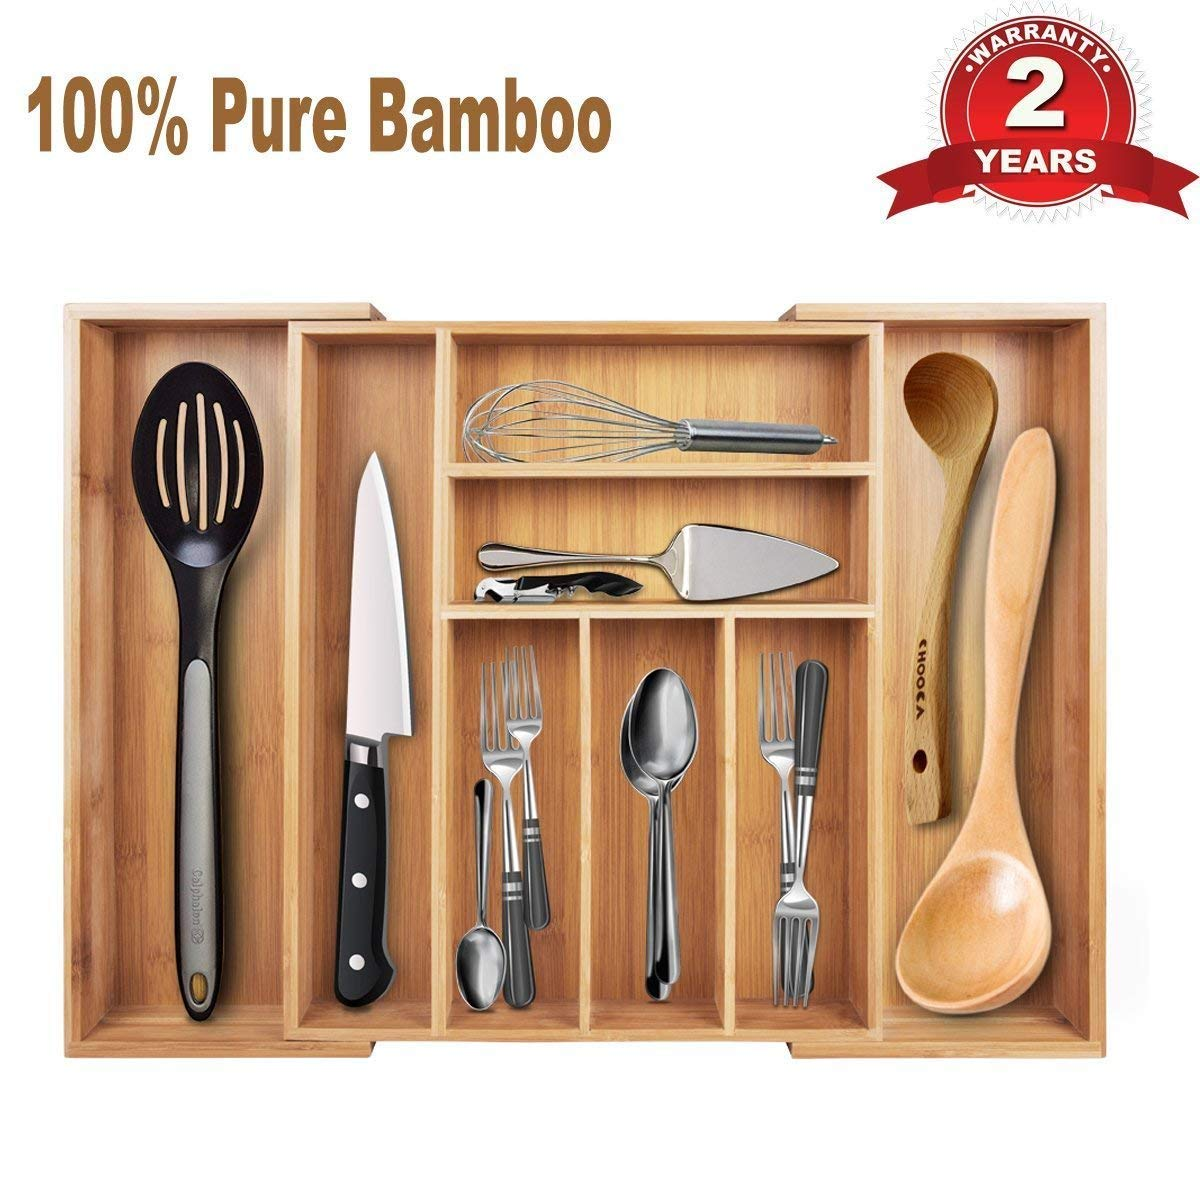 7cc969b24ec Expandable Bamboo Flatware Tray Cutlery and Utility Drawer Organizer 8  Compartments 2 with Adjustable Dimensions Beautiful Durable and 100% Pure  Bamboo